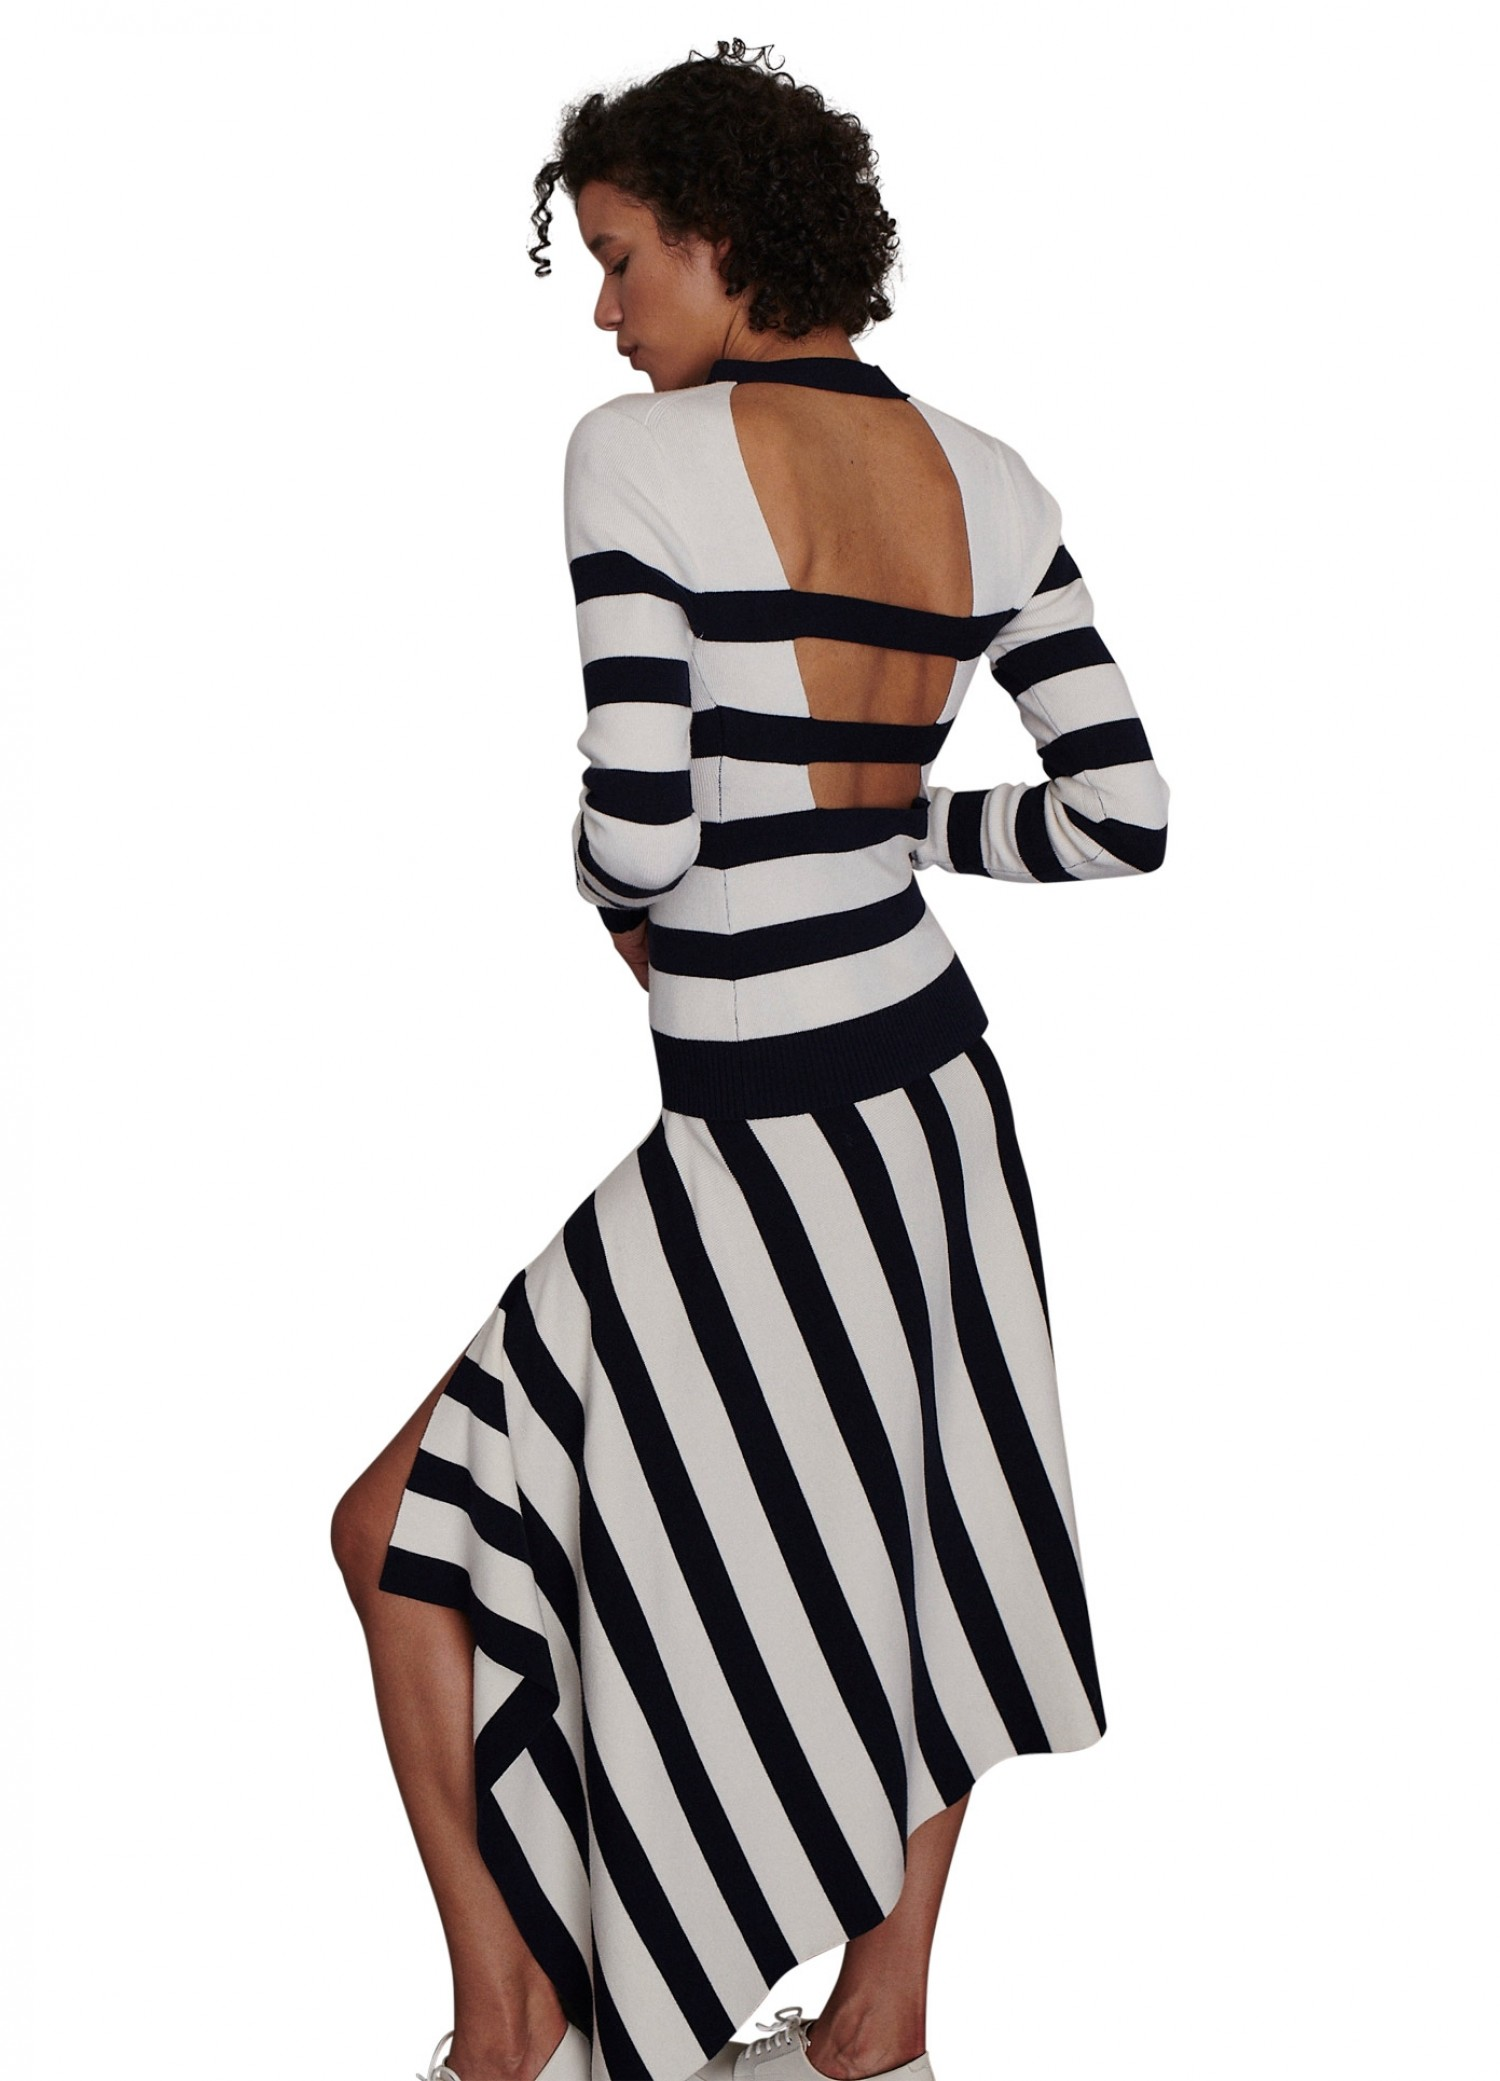 MONSE Cut Out Stripe Knit Top in Midnight and Ivory on Model Side View